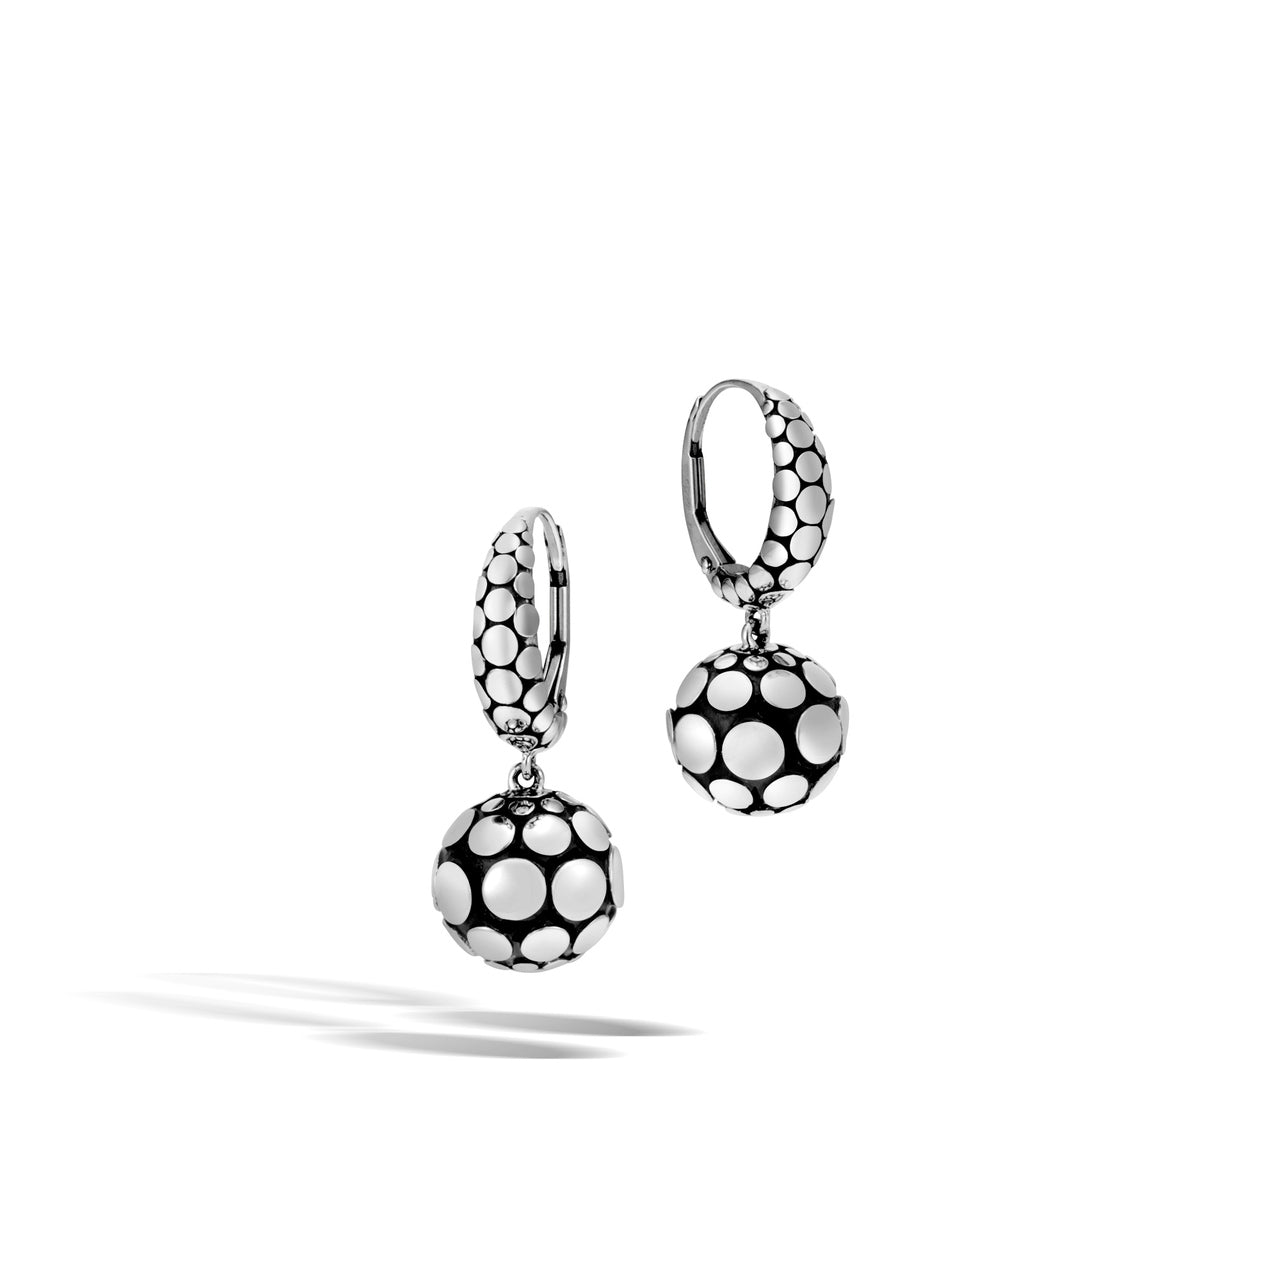 John Hardy Dot Sterling Silver Leverback Drop Earrings